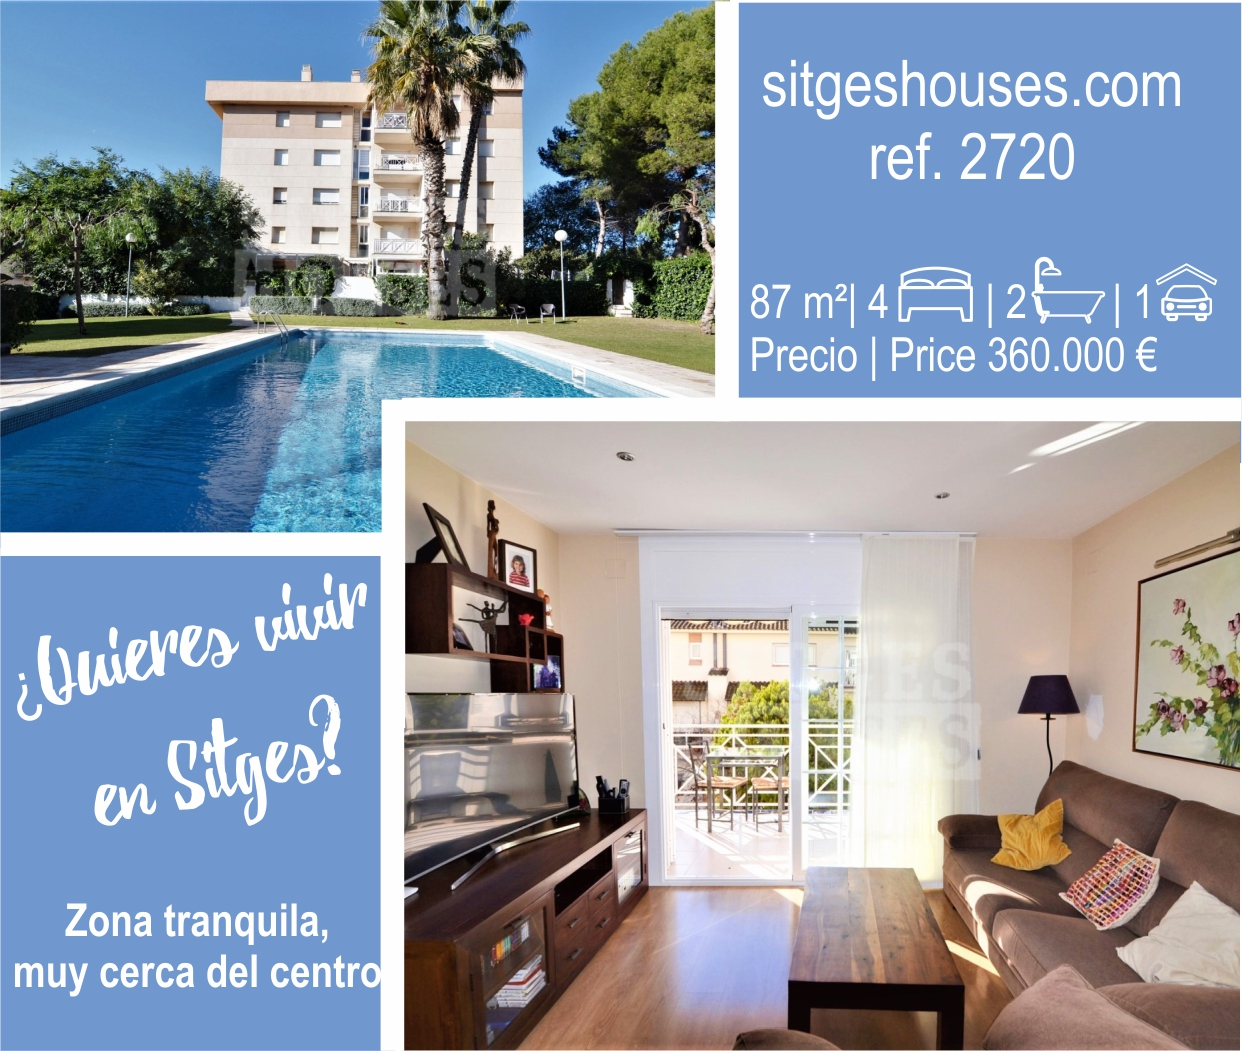 promo-sitges-houses